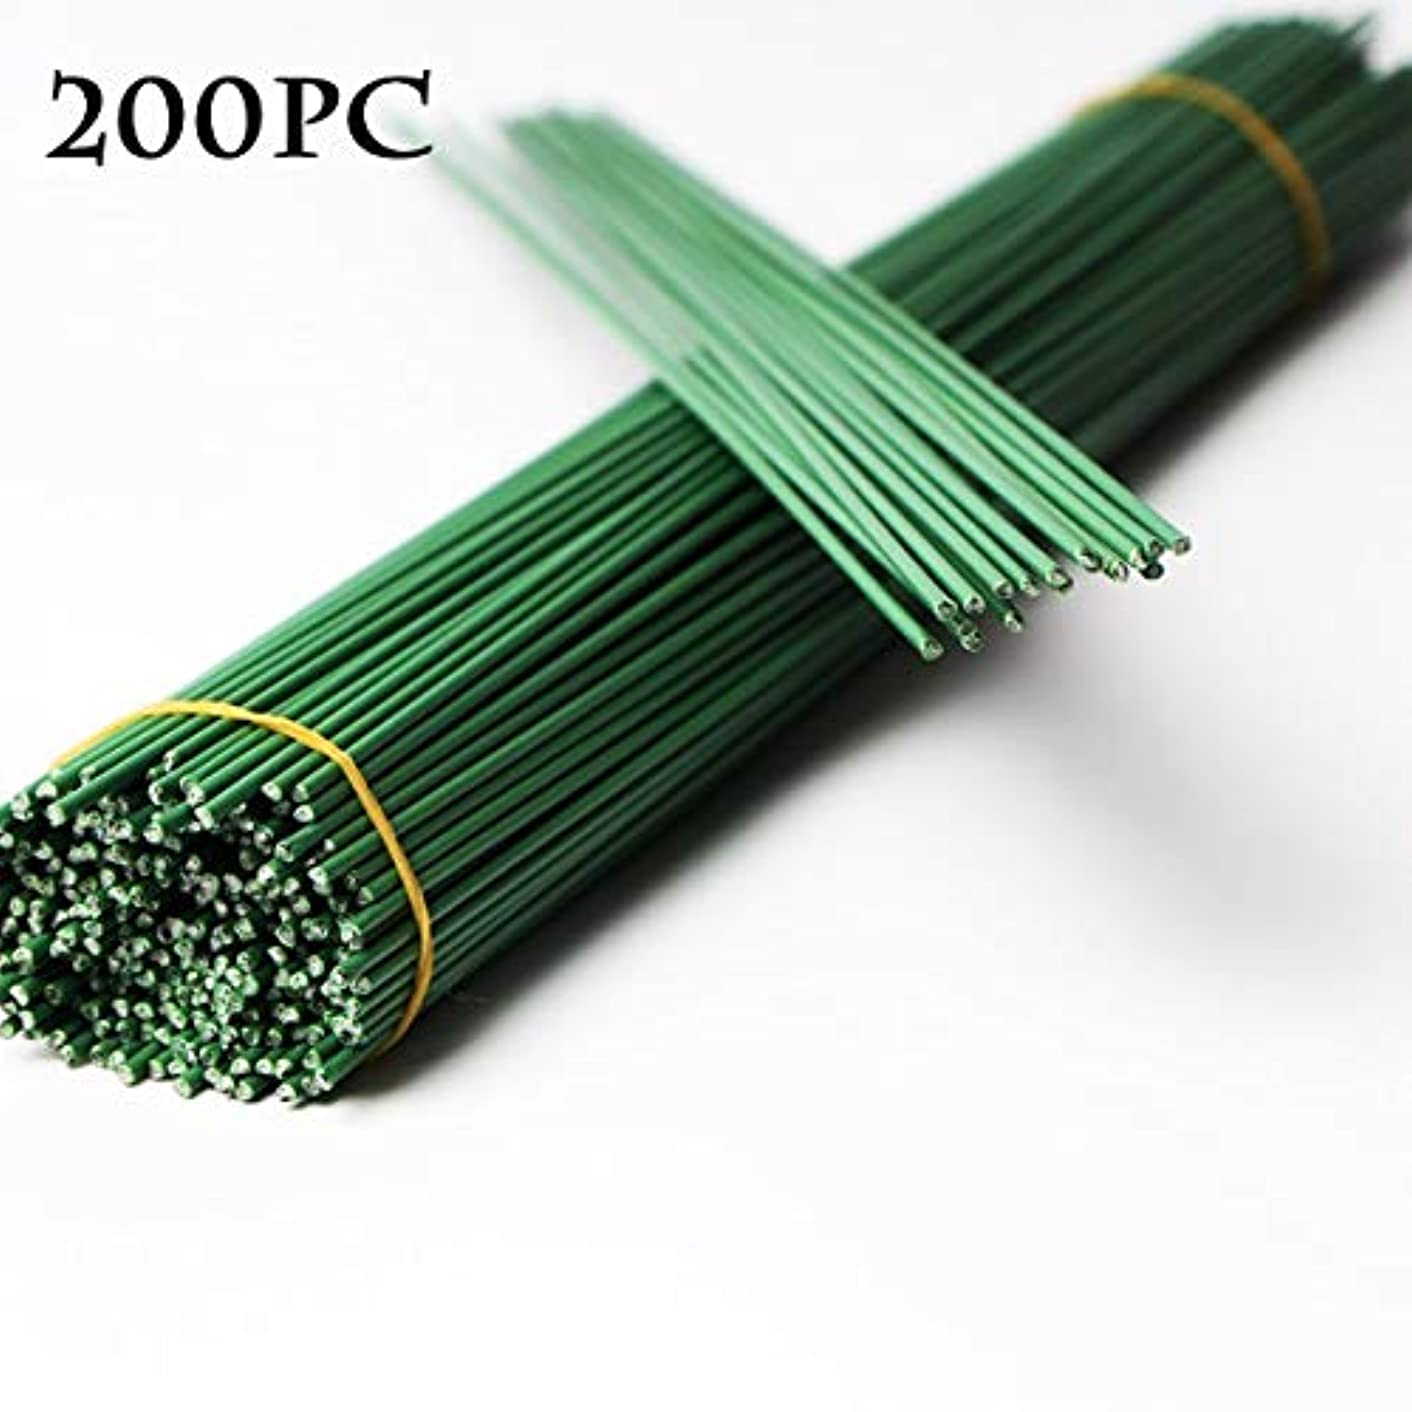 200 Pcs Wrapped 18 Gauge Floral Wire Stems for Bouquets, Flower Arrangements and DIY Crafts, Green, 11.4